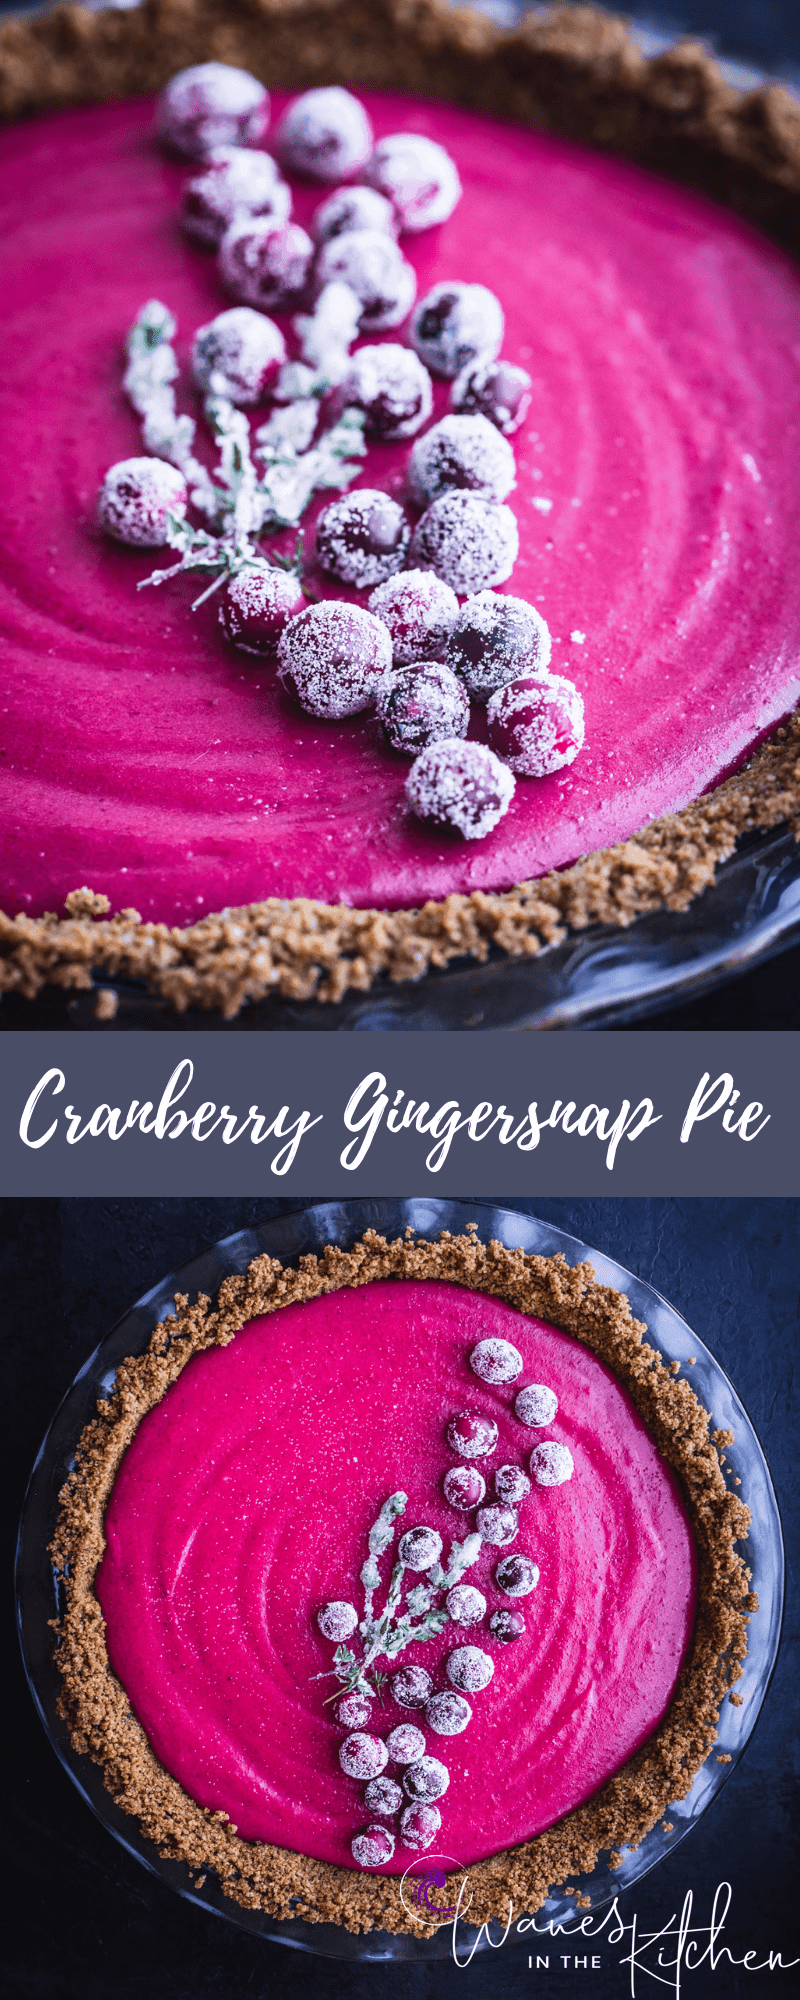 Cranberry Gingersnap Pie Recipe | Waves in the Kitchen